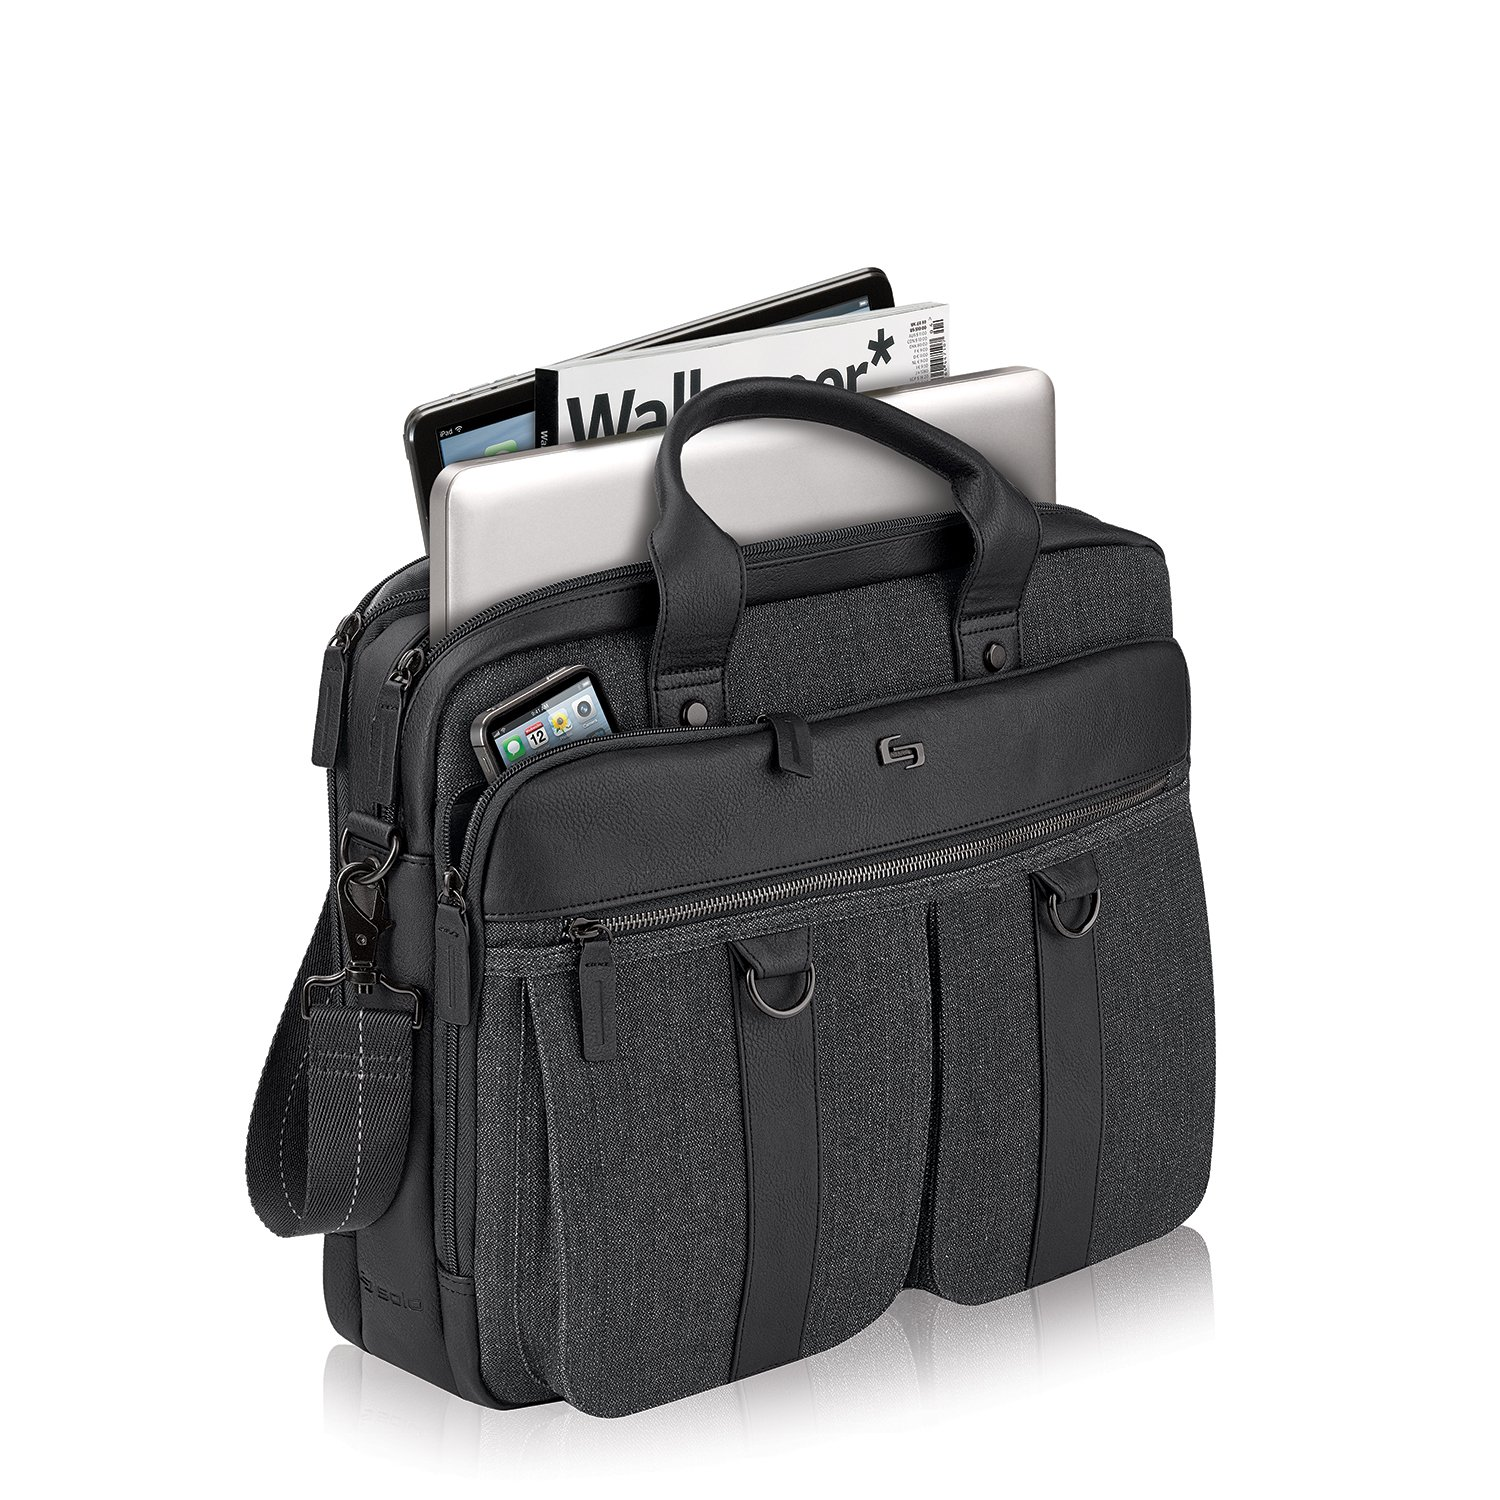 Solo Mercer 15.6 Inch Laptop Briefcase, Black/Grey by SOLO (Image #4)